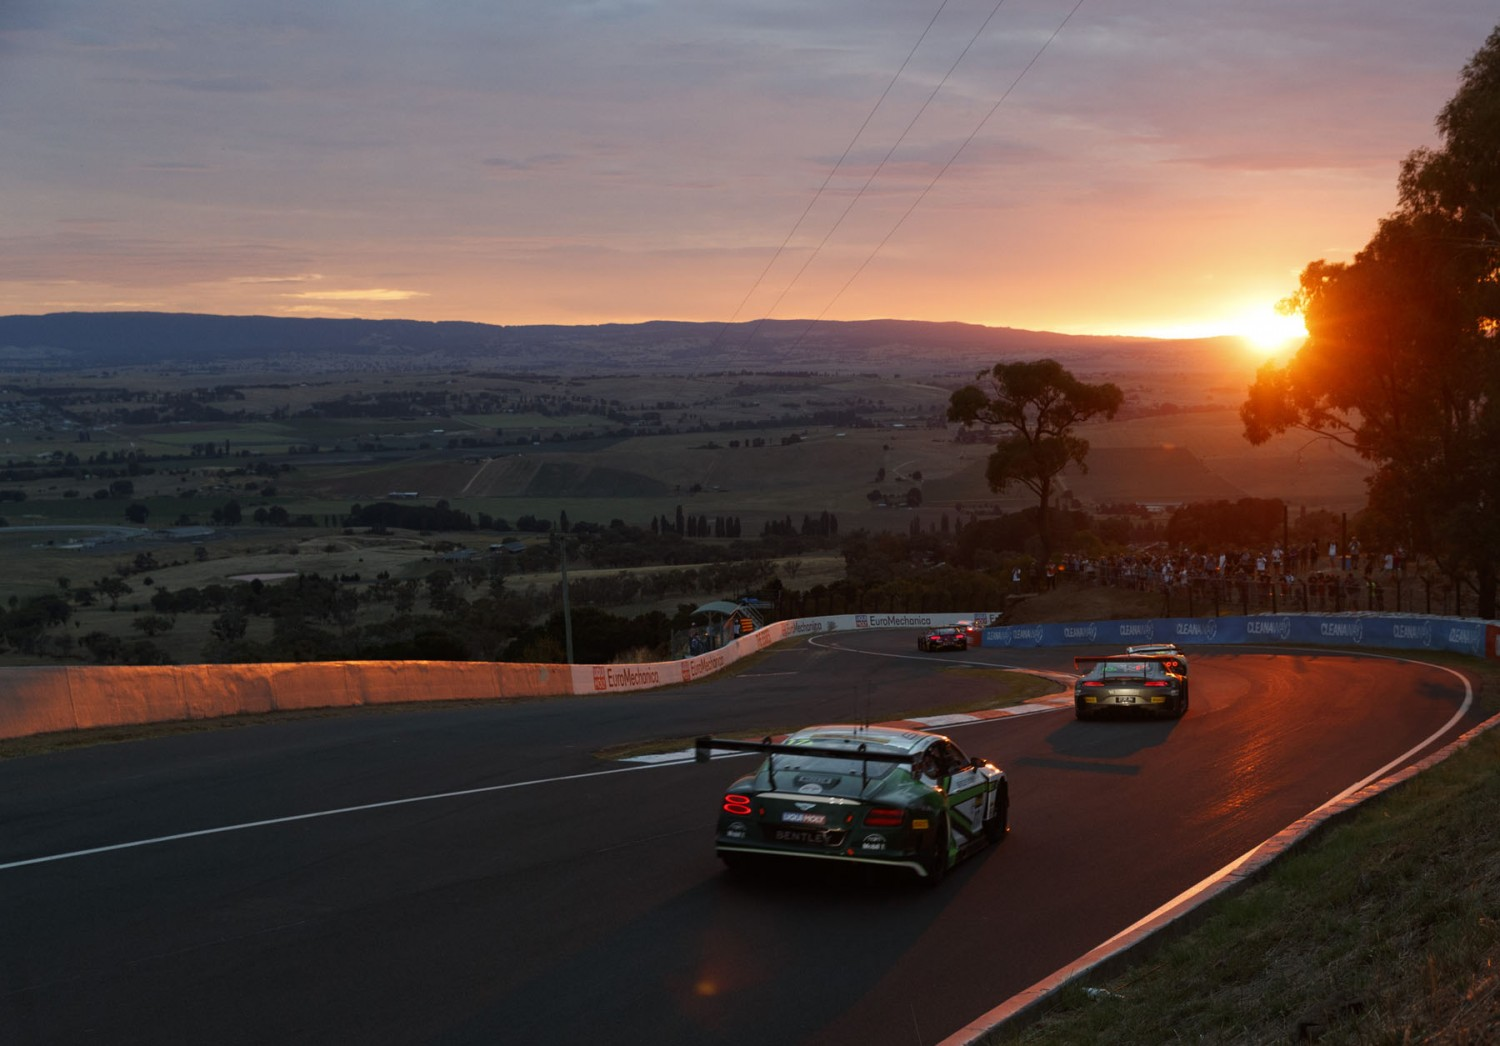 Manufacturers ready to start Intercontinental GT Challenge title quest in Bathurst, Spa up next